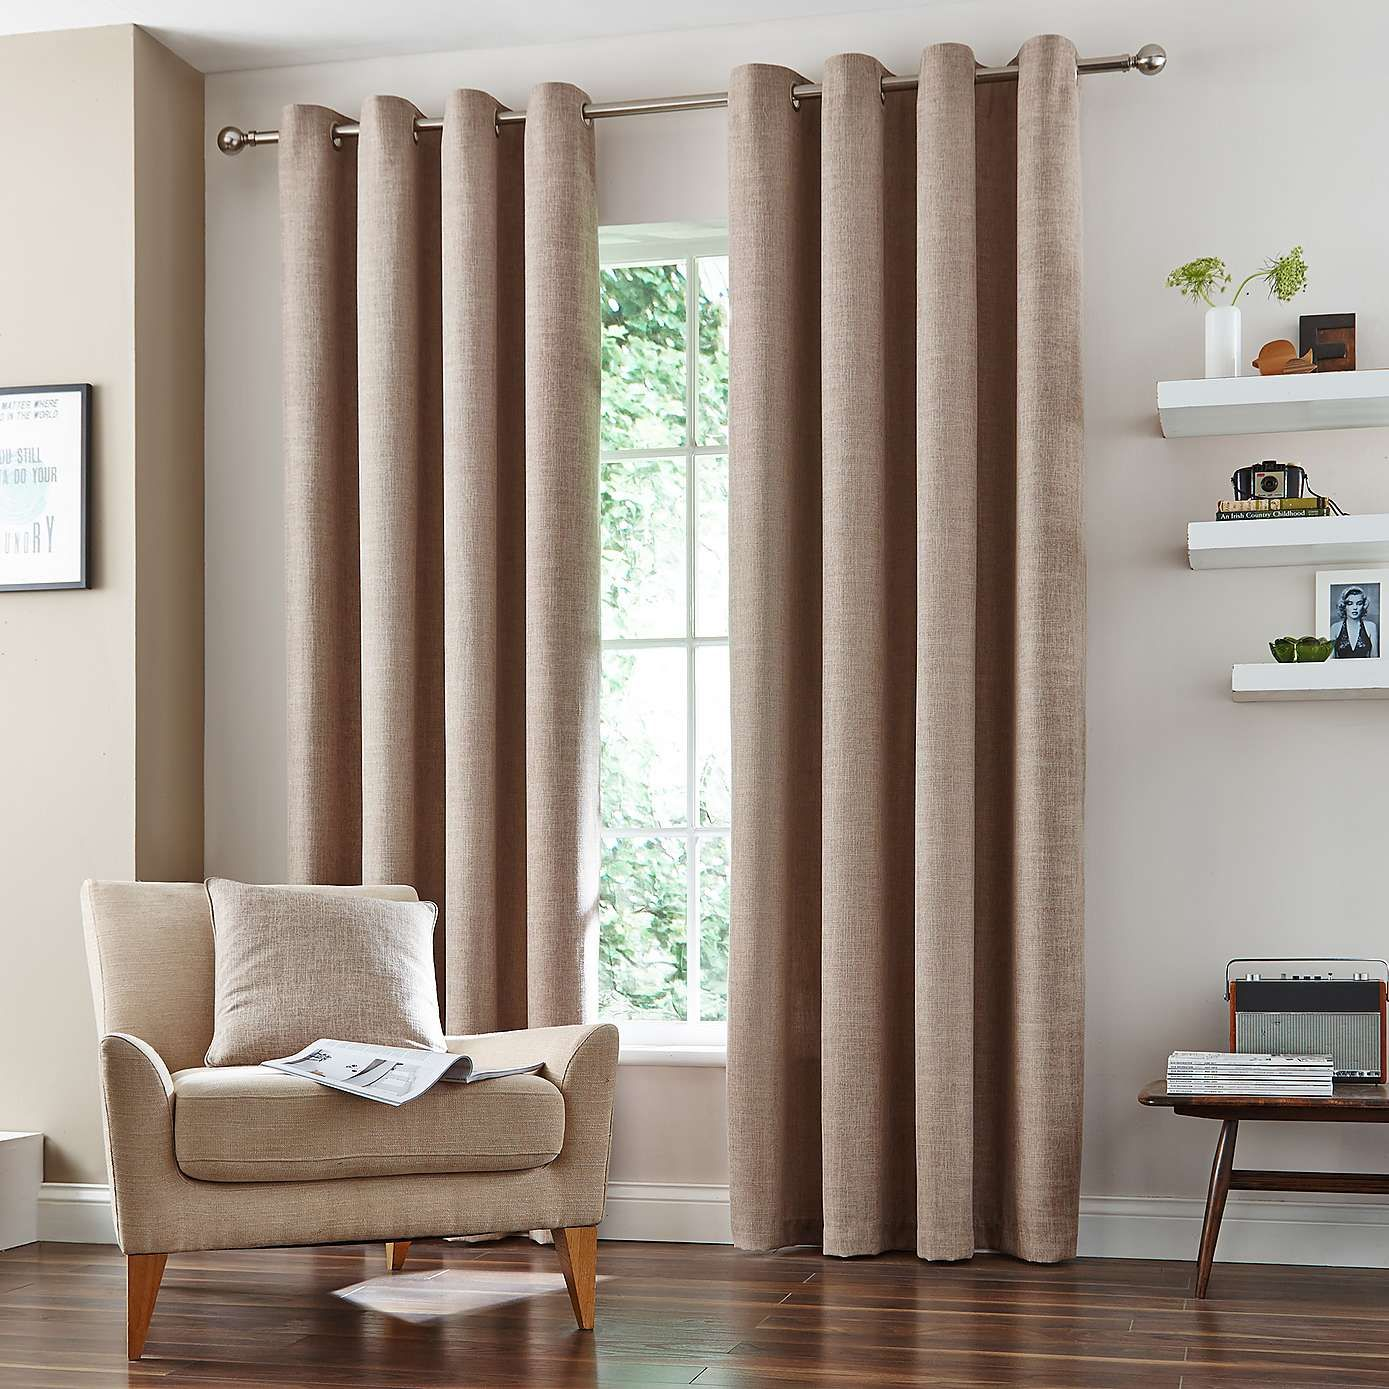 Natural Vermont Lined Eyelet Curtains Dunelm For The